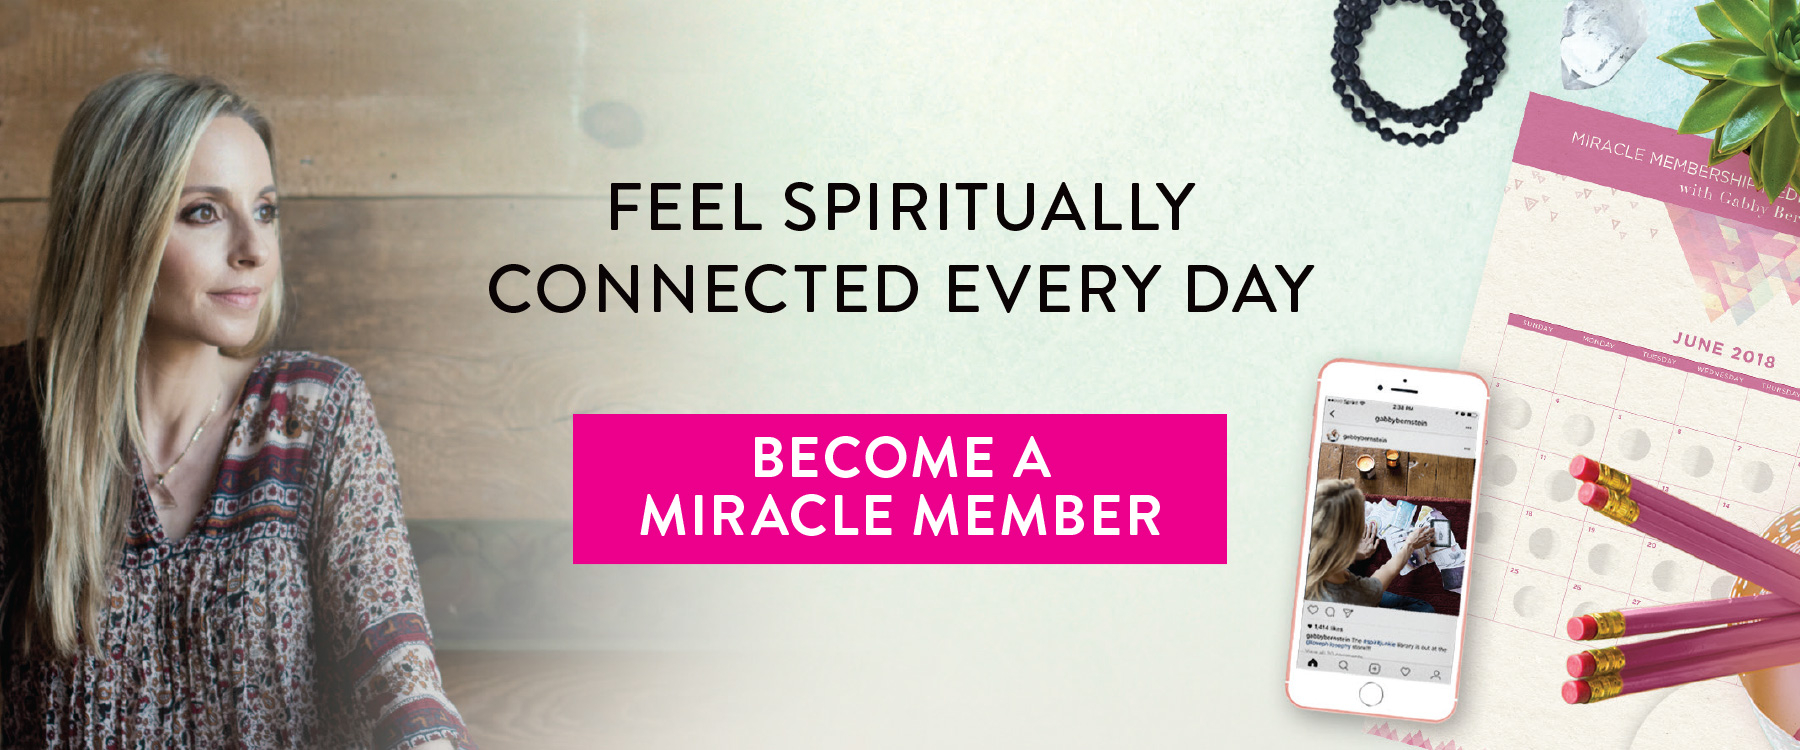 Miracle Membership by Gabby Bernstein